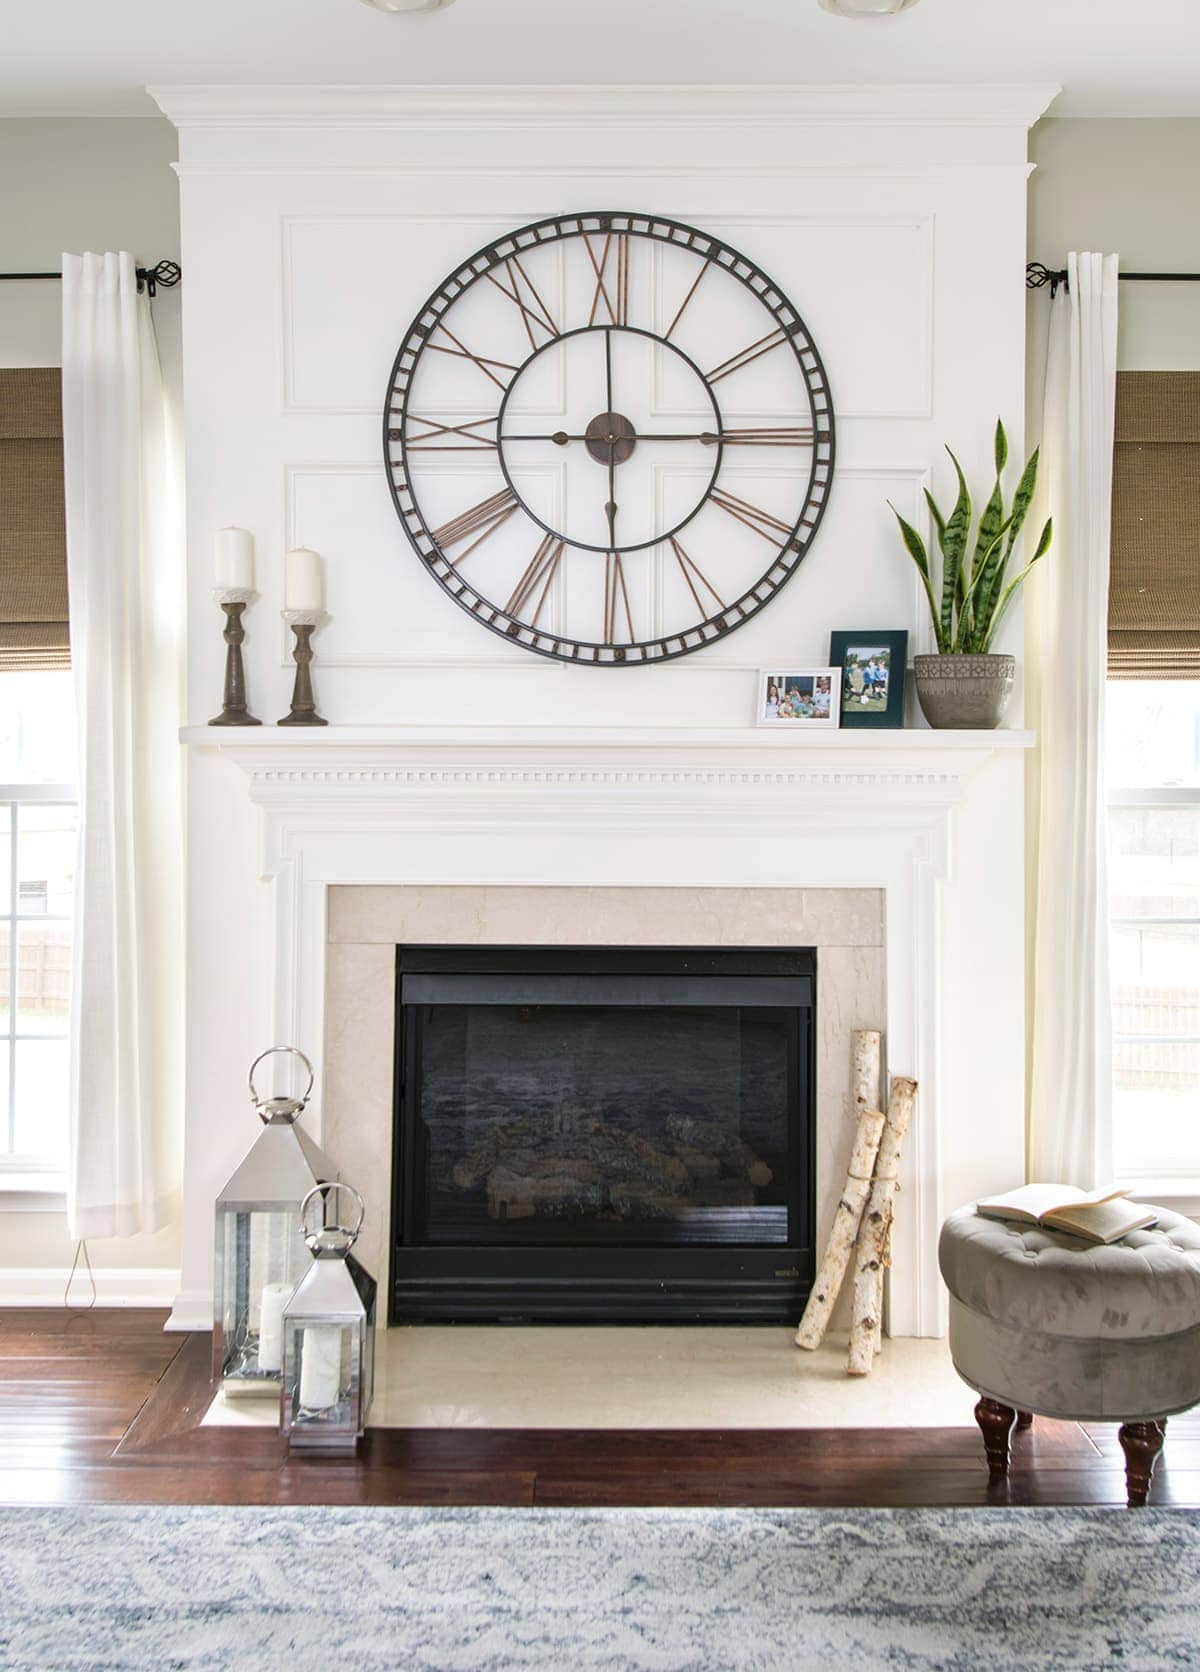 Fireplace and mantel styling. Large modern clock, candlesticks and modern lanterns. Boho global decor accents for traditional living room.